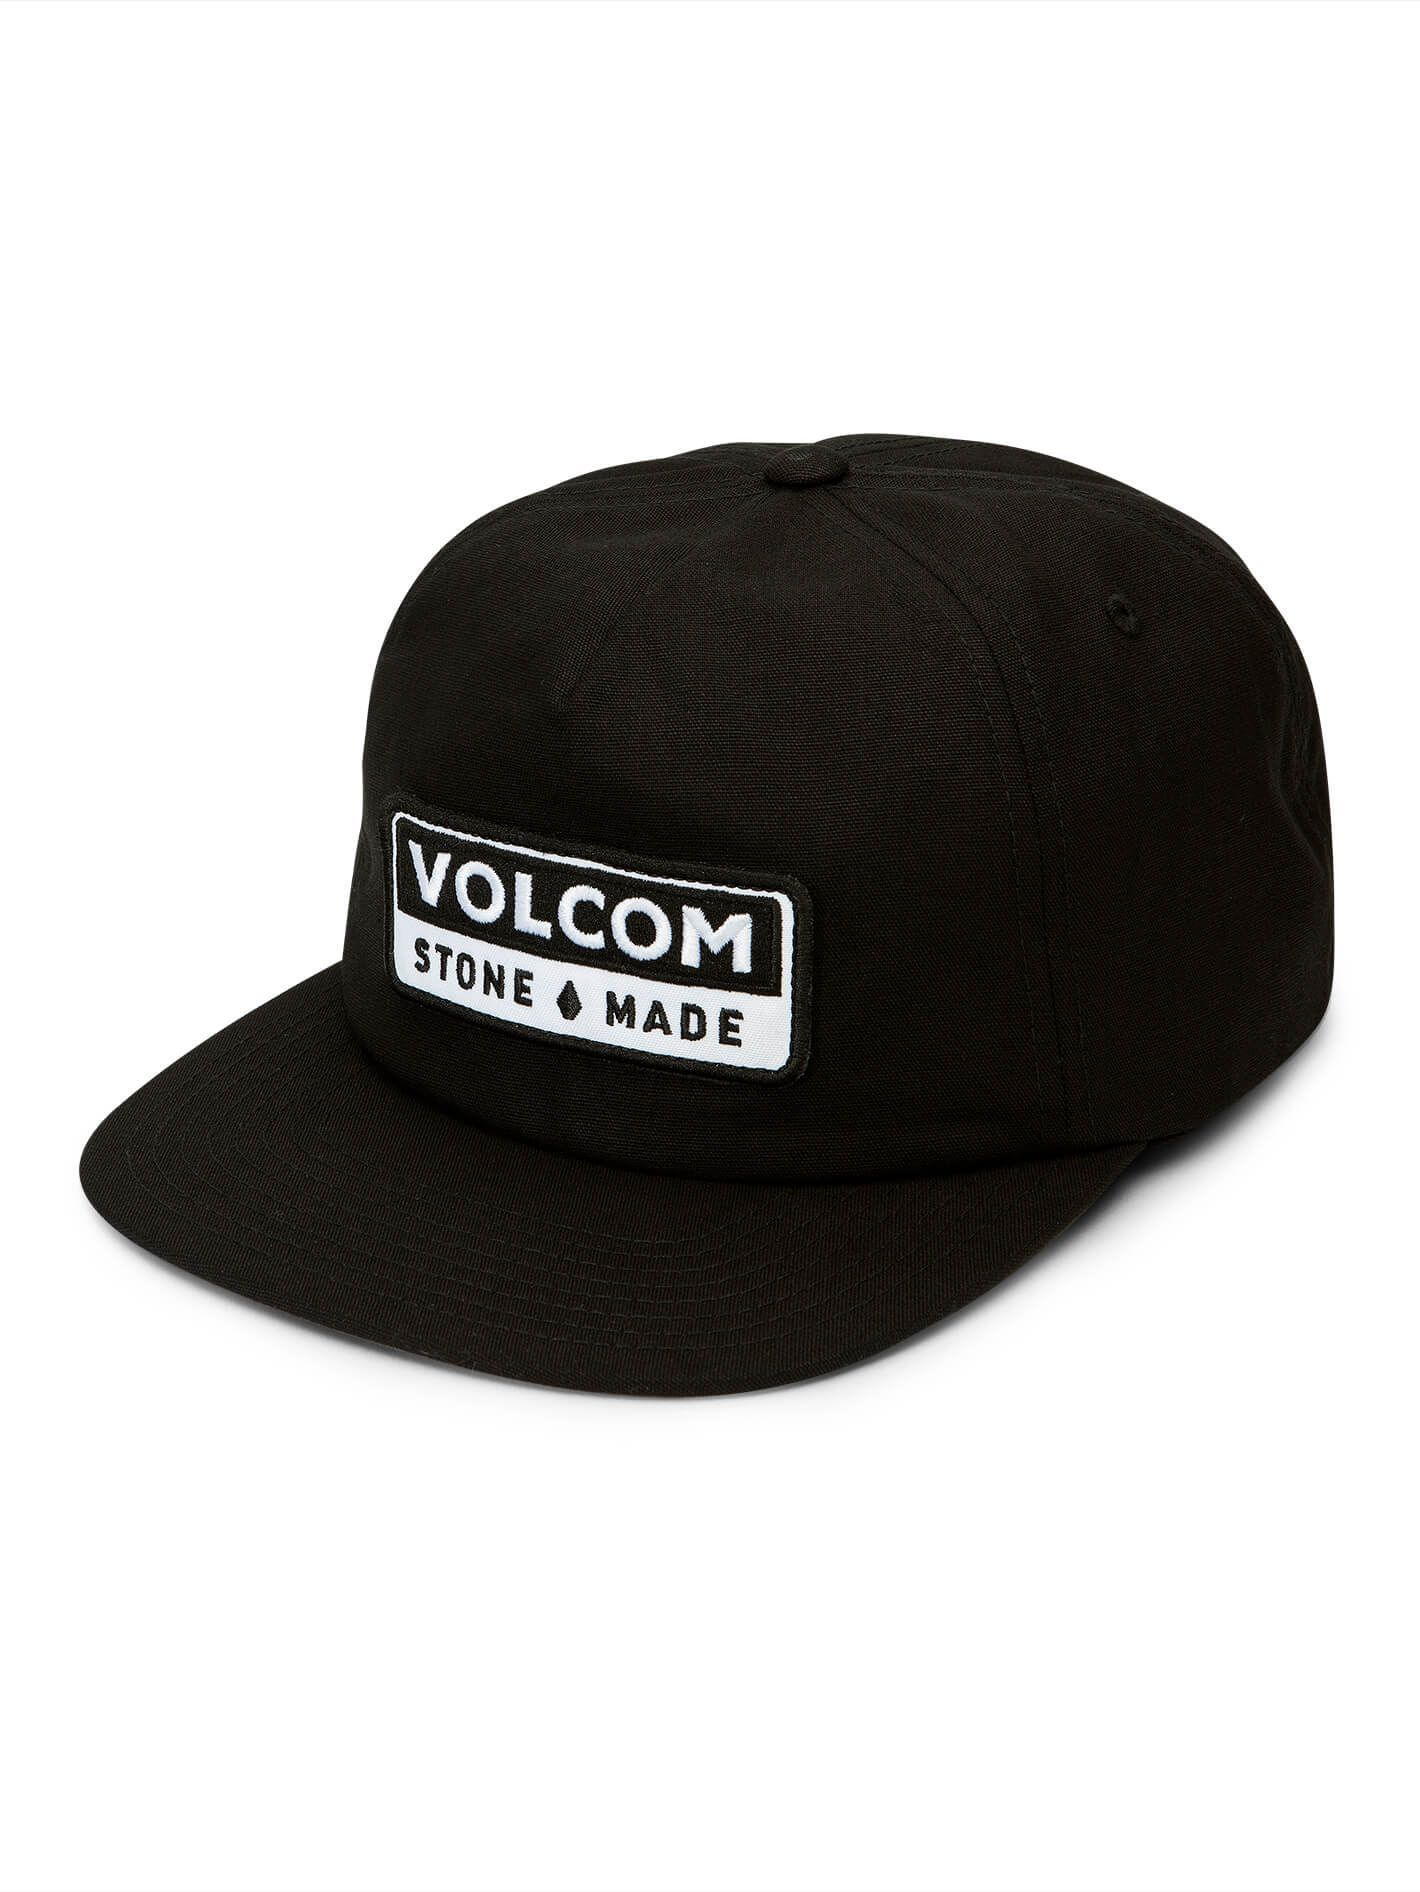 low priced f49ca ce0c4 Volcom Transporter Cap Mens Snapback Hat -Blk Made for fast action and life  on the road, there s no slowing down the Transporter hat.